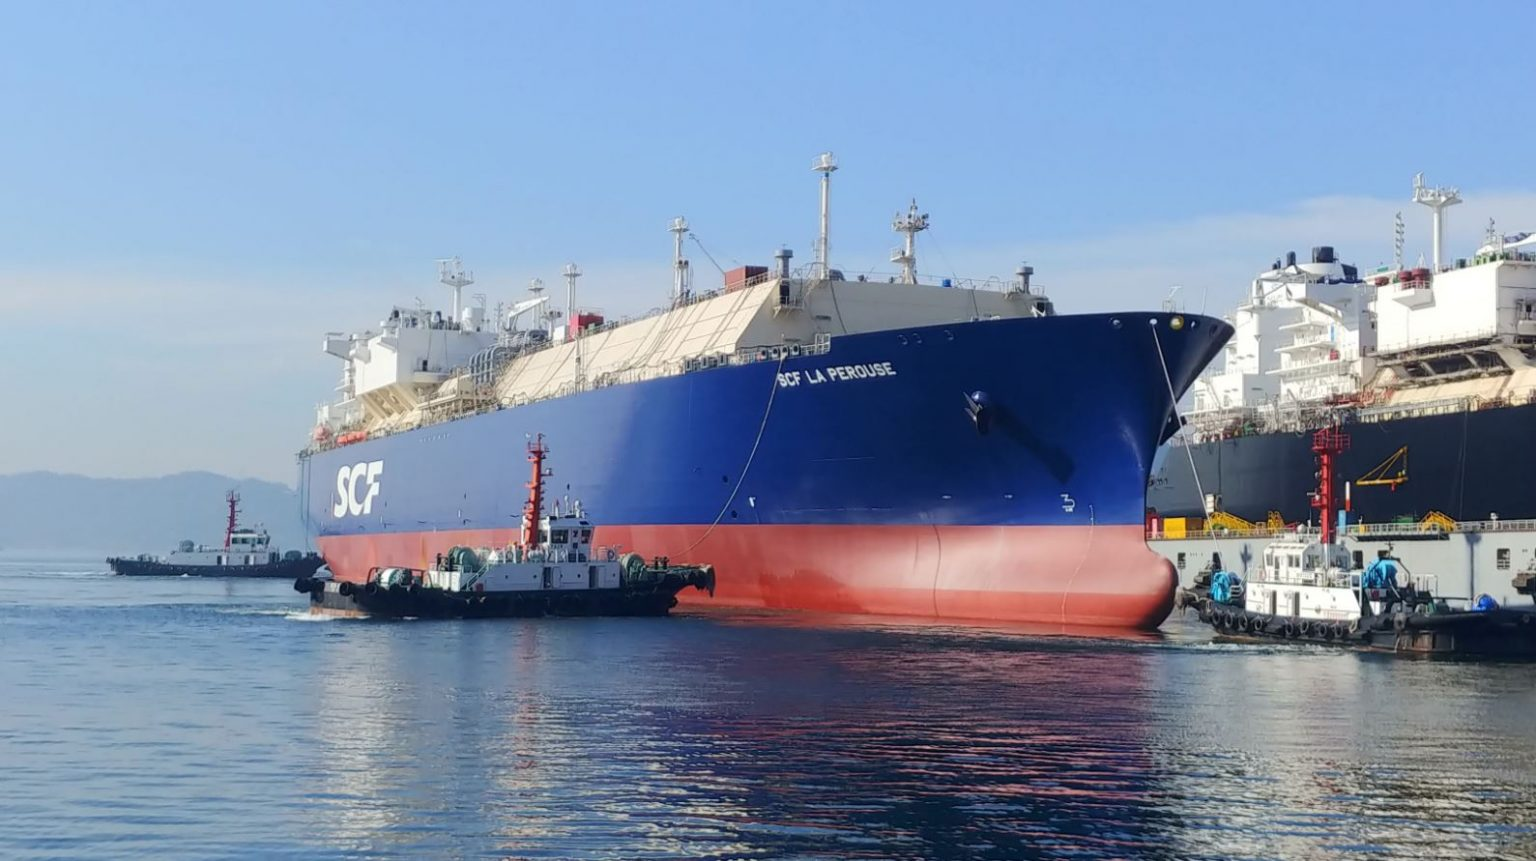 TotalEnergies charters two additional LNG carriers from Sovcomflot